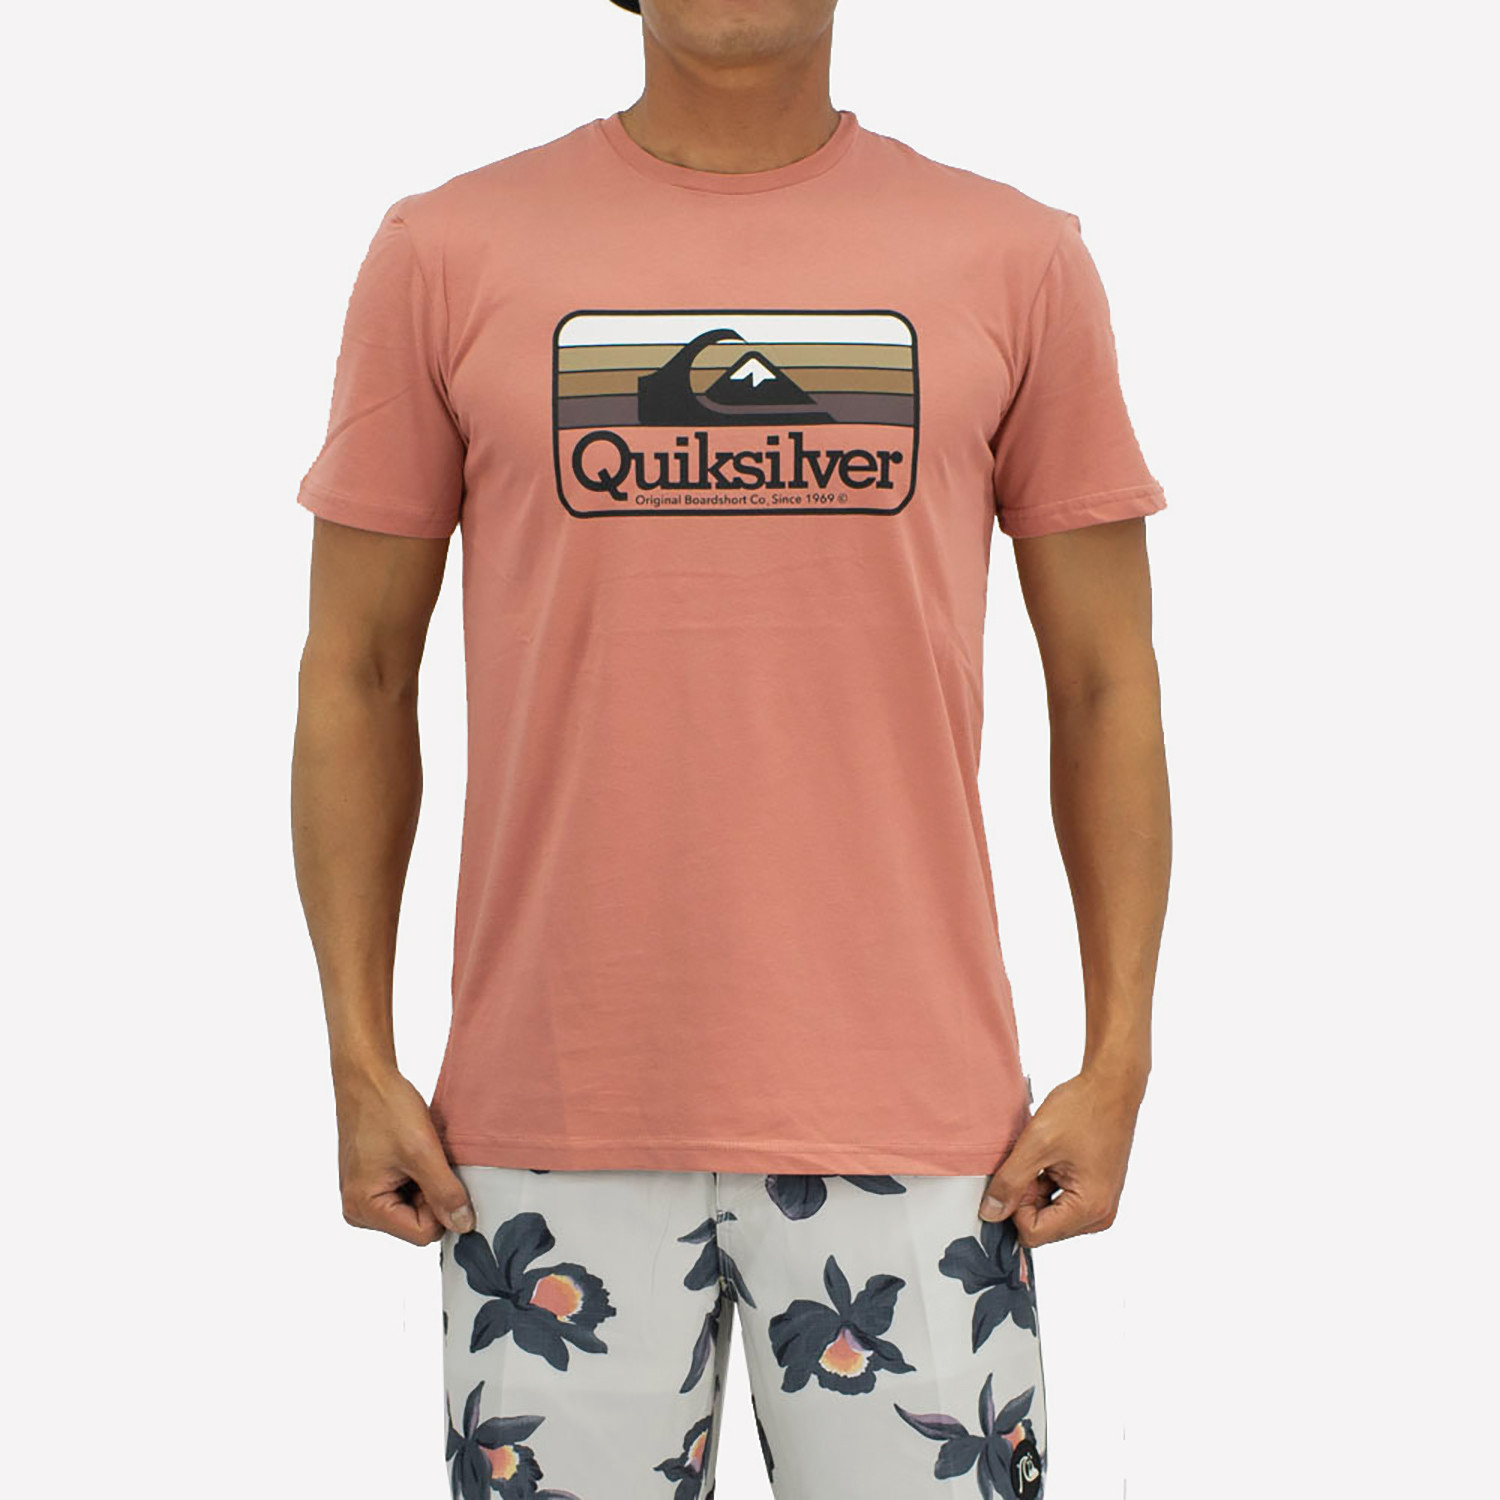 Quiksilver Dreamers Of The Shore Ανδρικό T-Shirt (9000075665_52067)